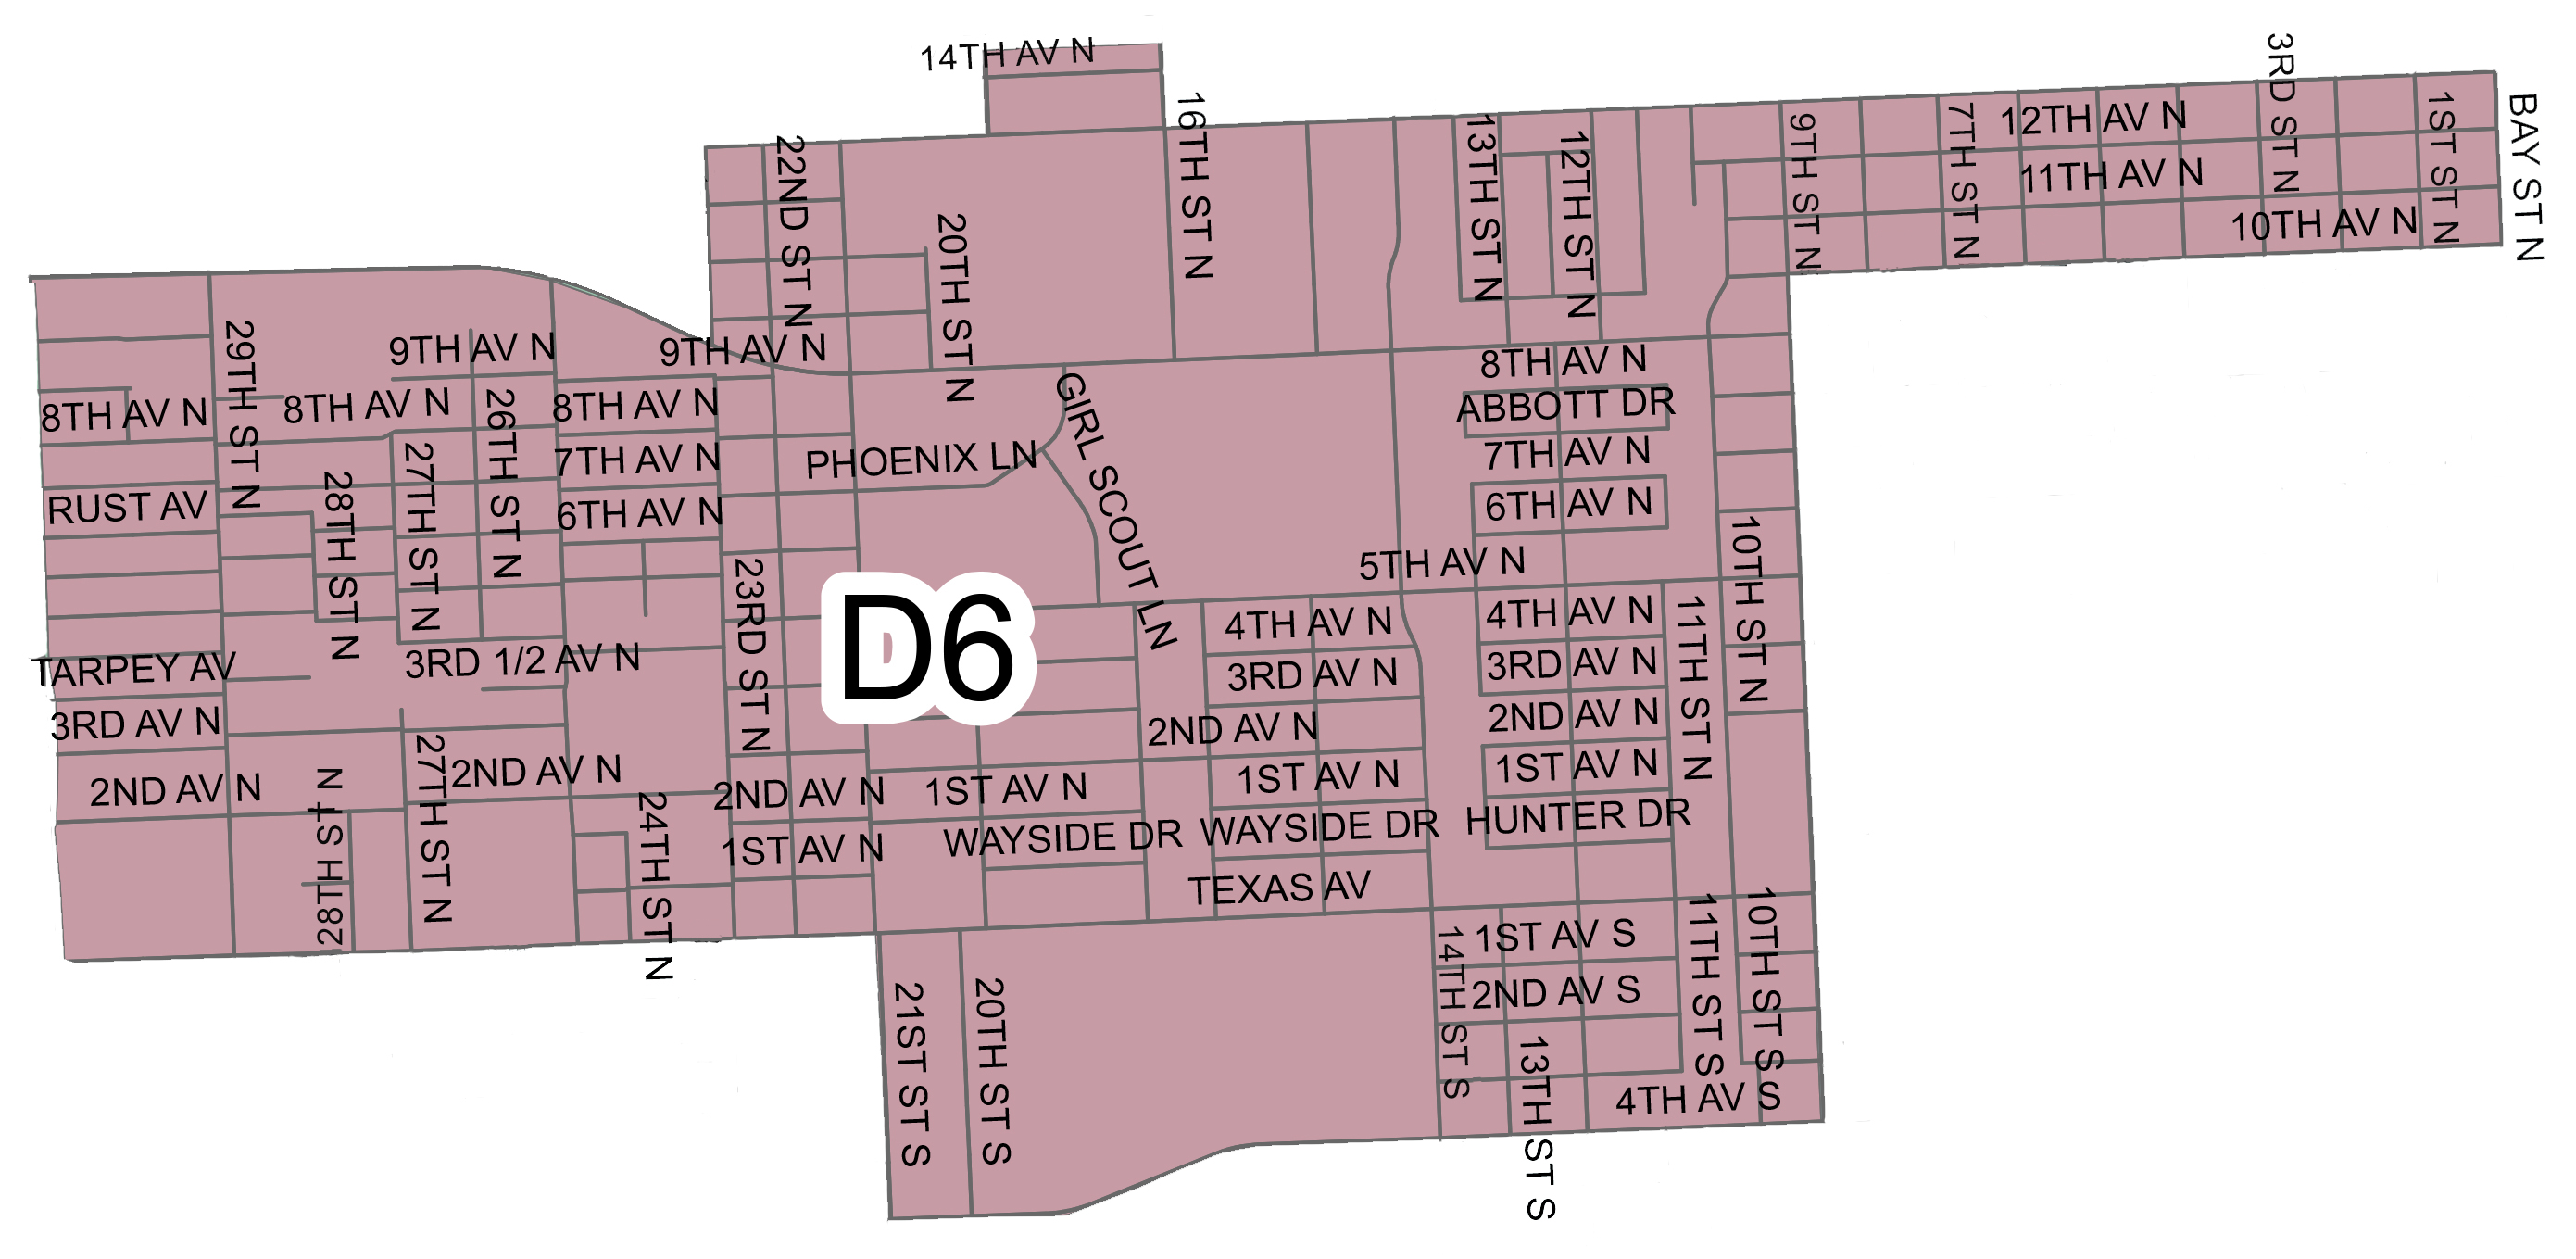 Map Of Texas District 6.Territorial Maps For Trustee Positions Texas City